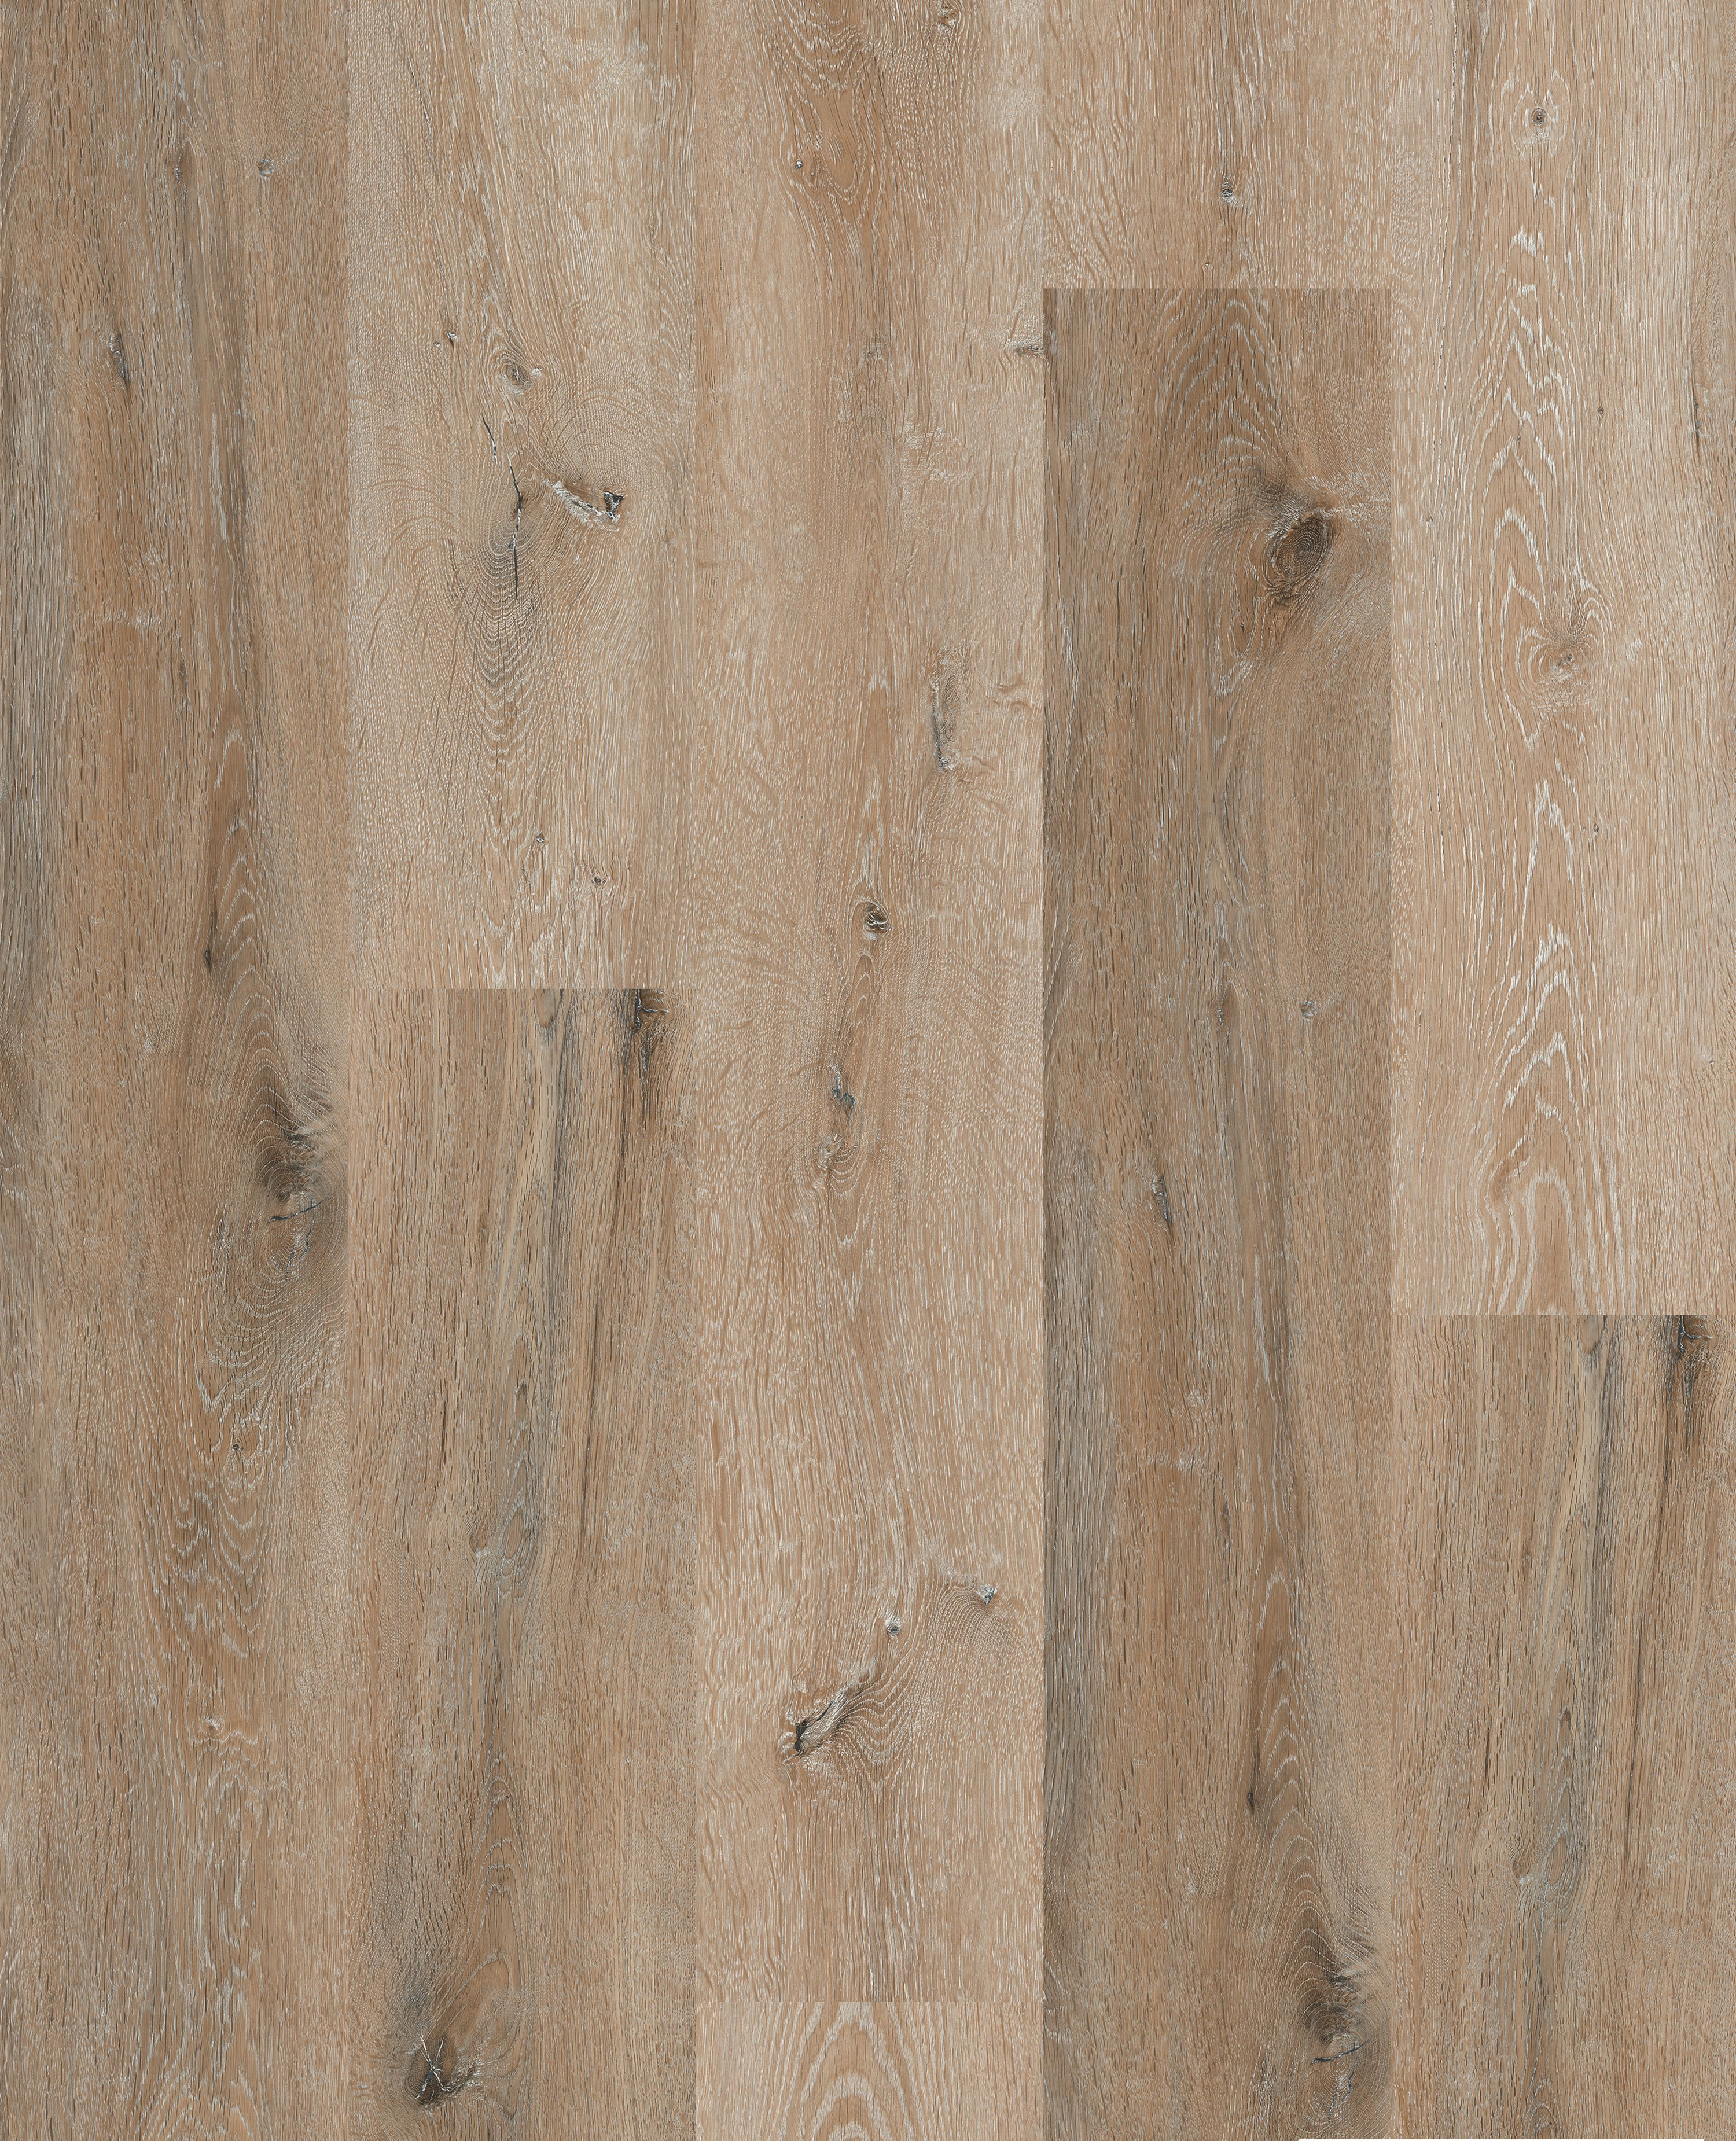 Classic 30 in 2020 Natural shades, Classic, Hardwood